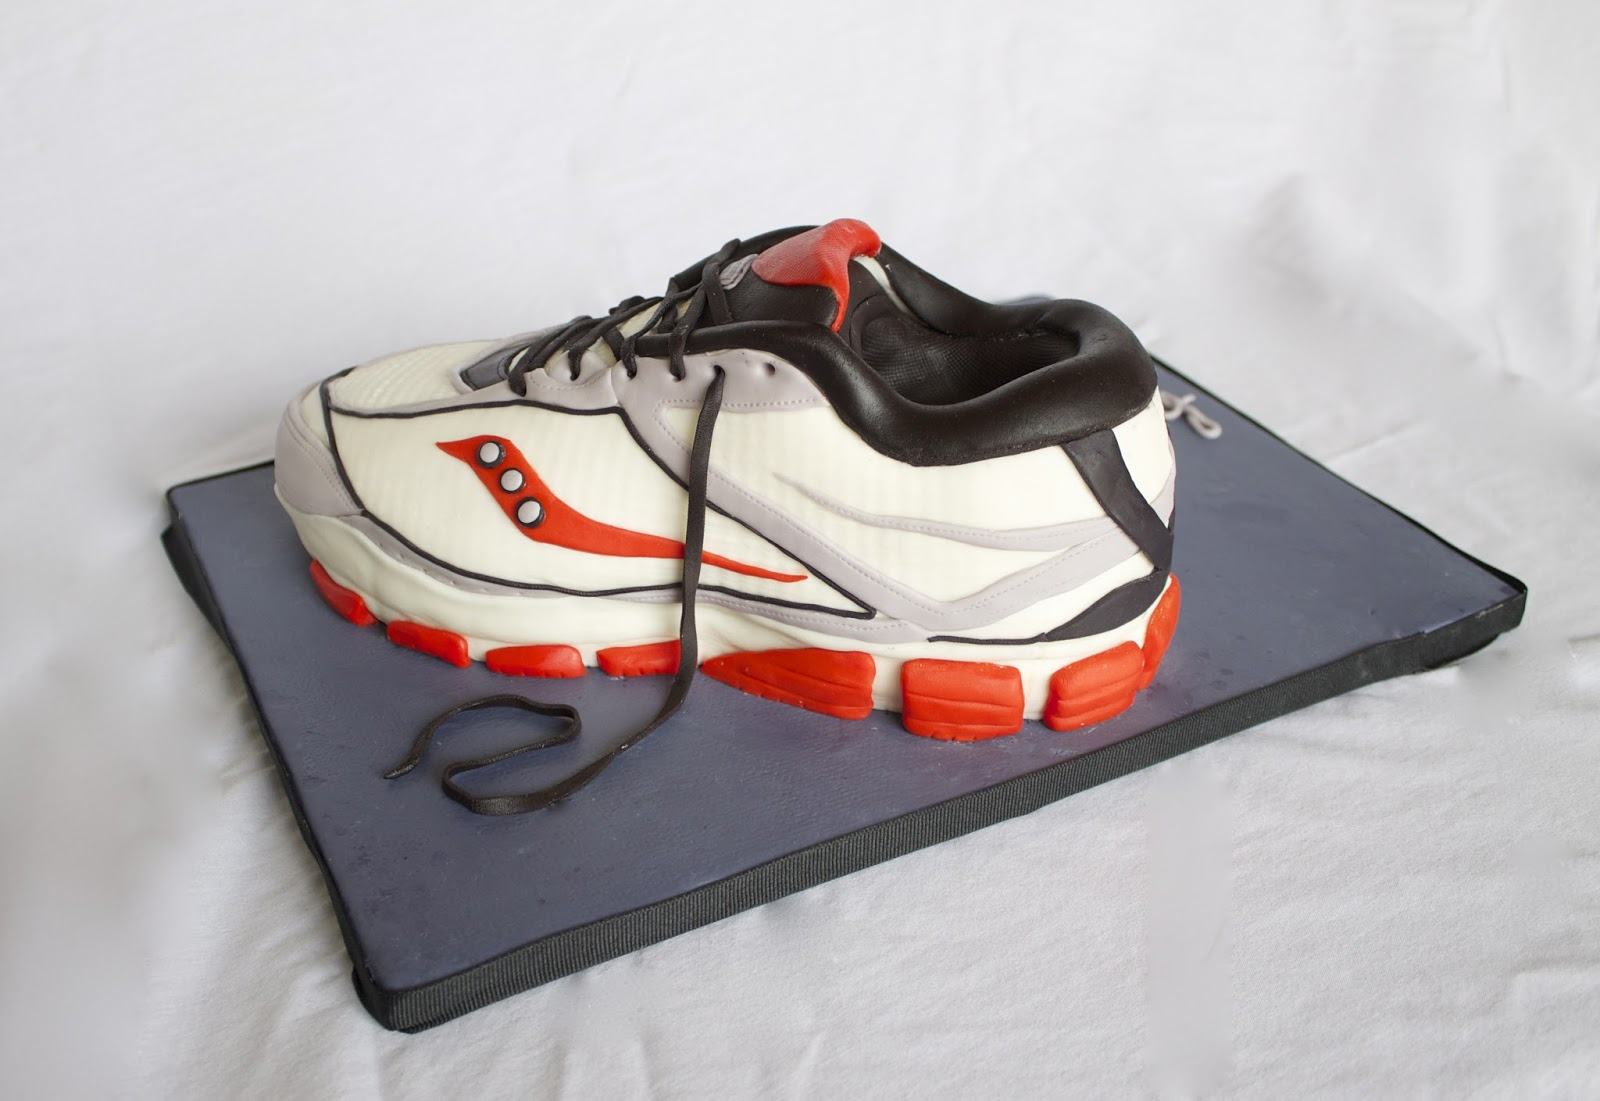 How To Make A Running Shoe Out Of Fondant